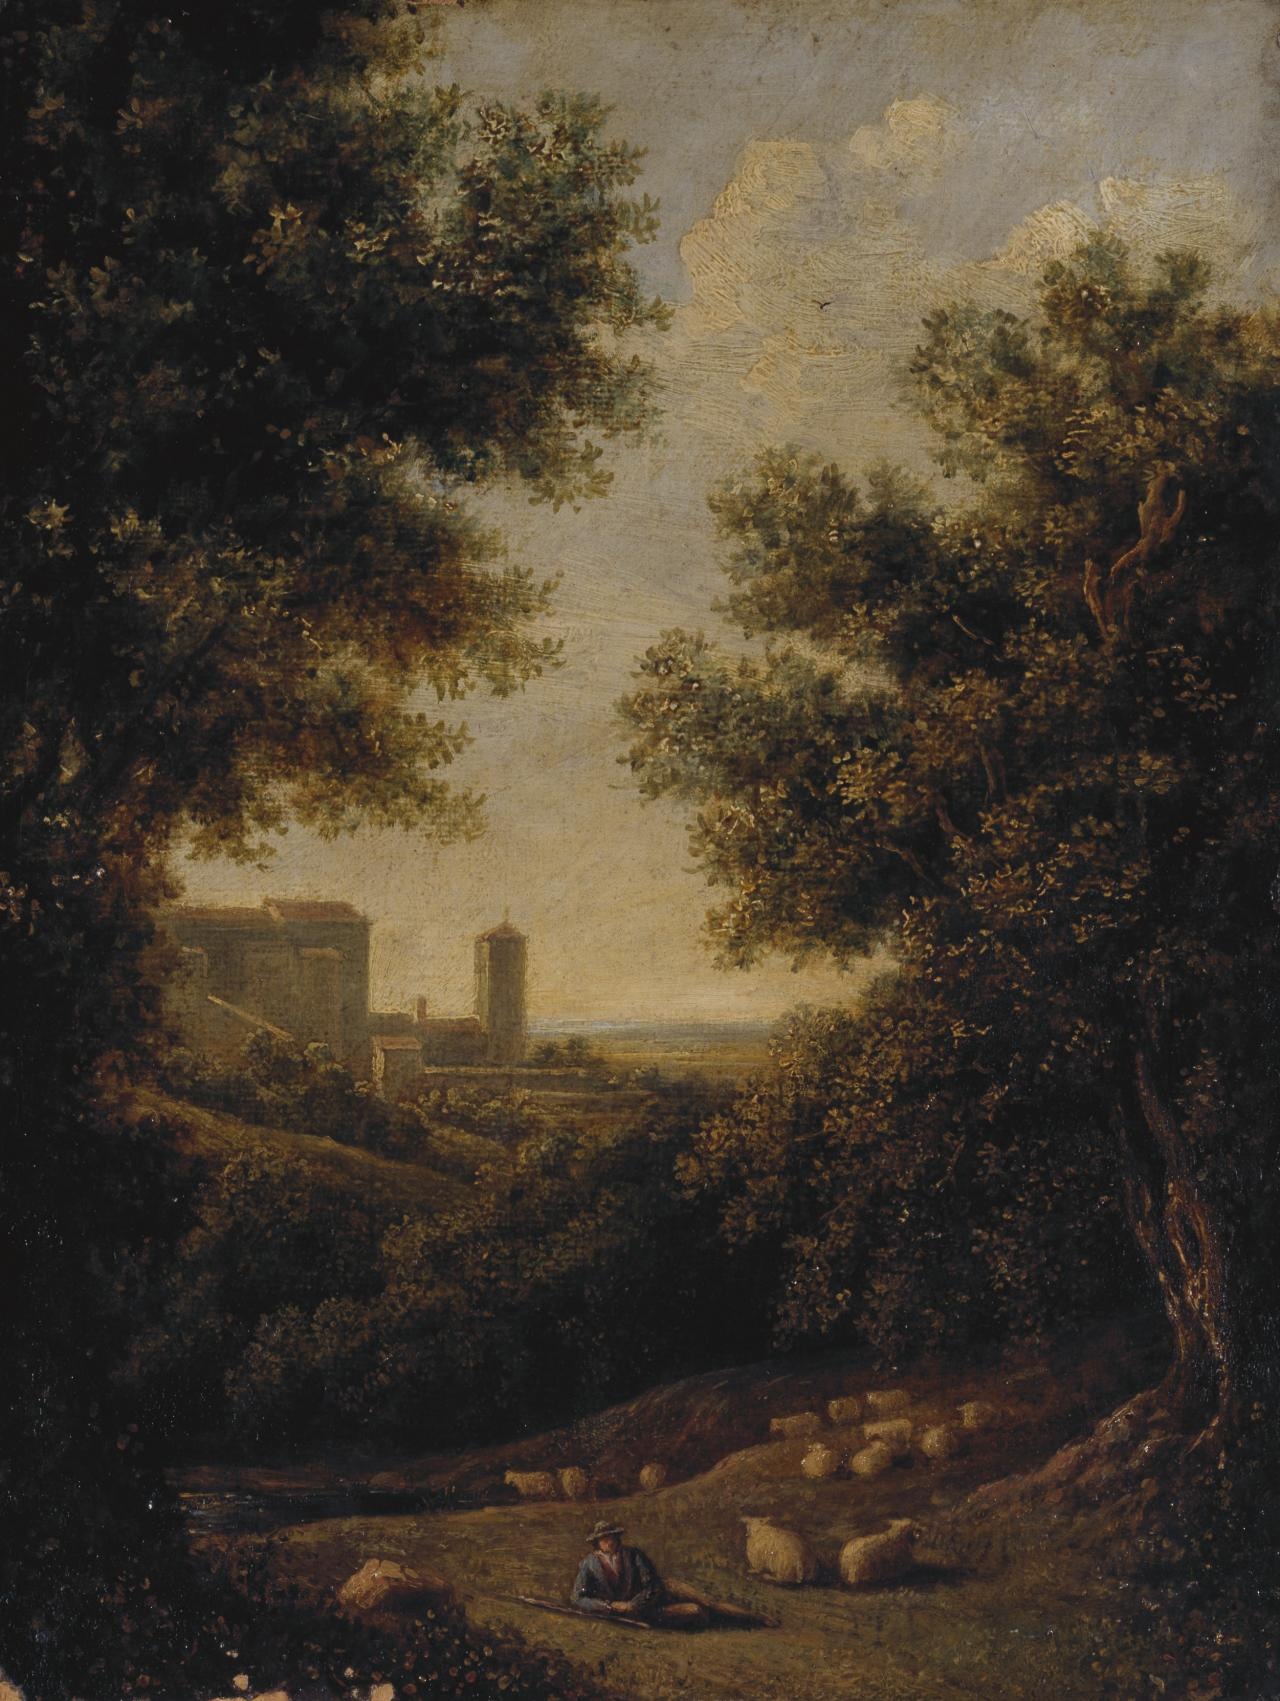 Landscape with Italian buildings and a shepherd